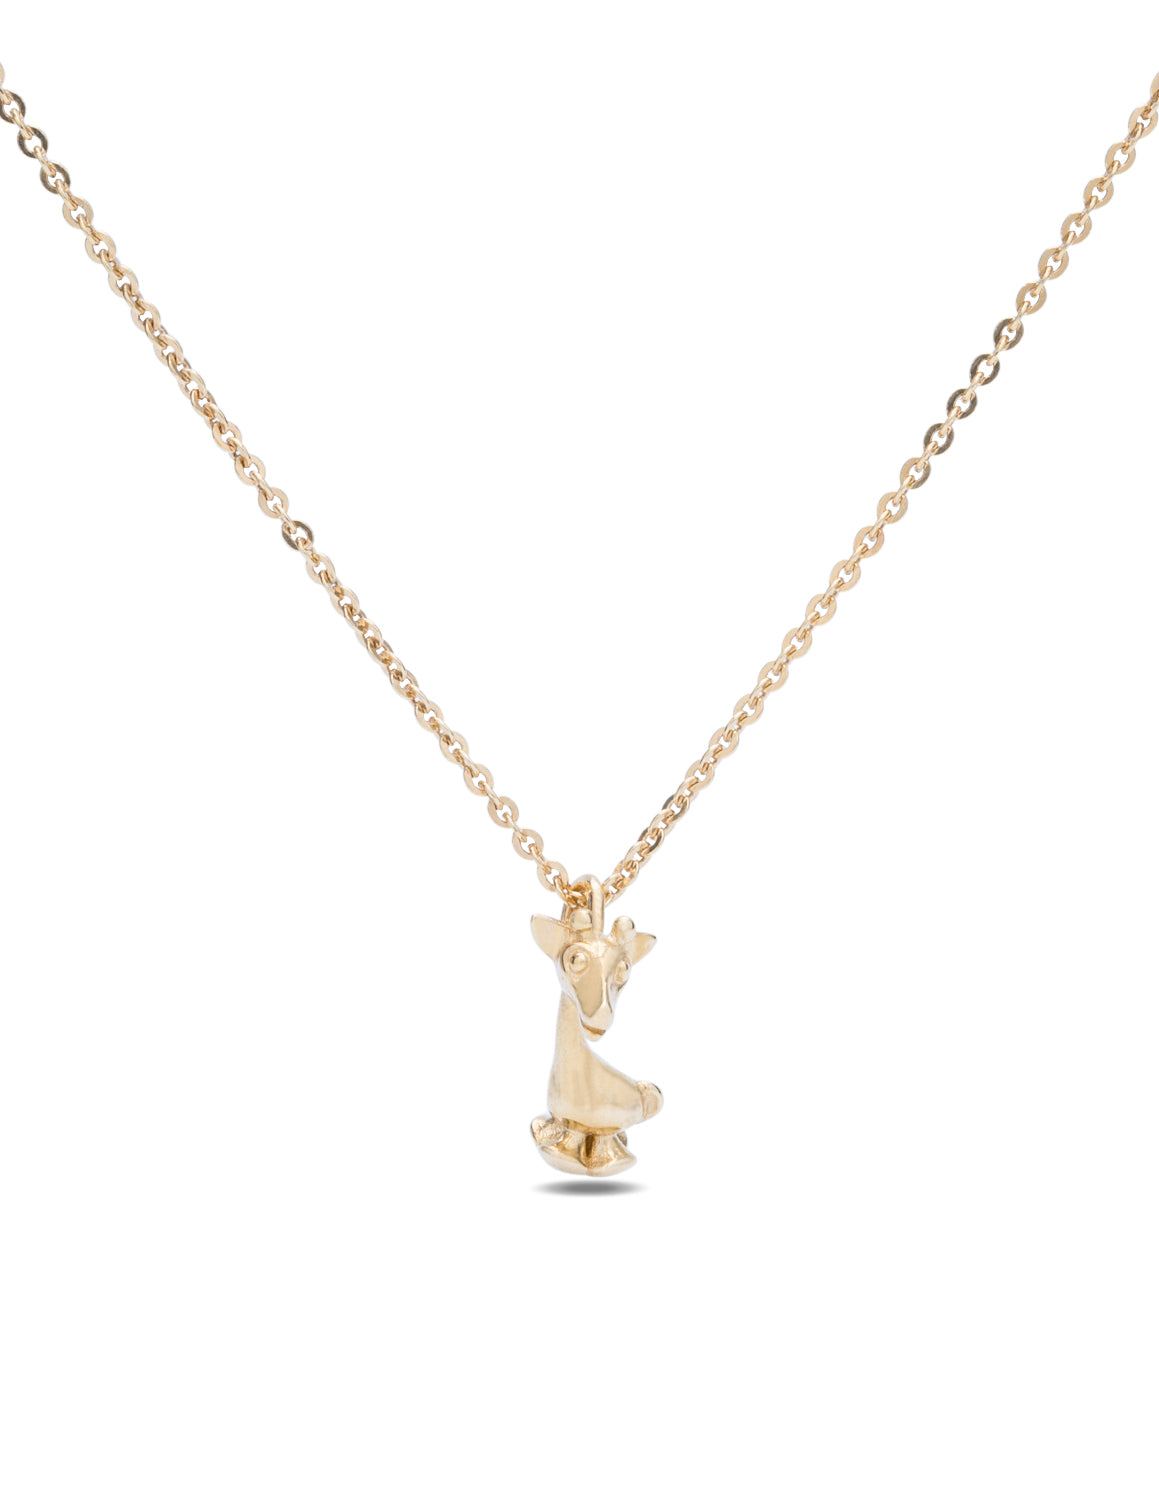 Yellow Gold Mini Giraffe Pendant/Charm - Charles Koll Jewellers